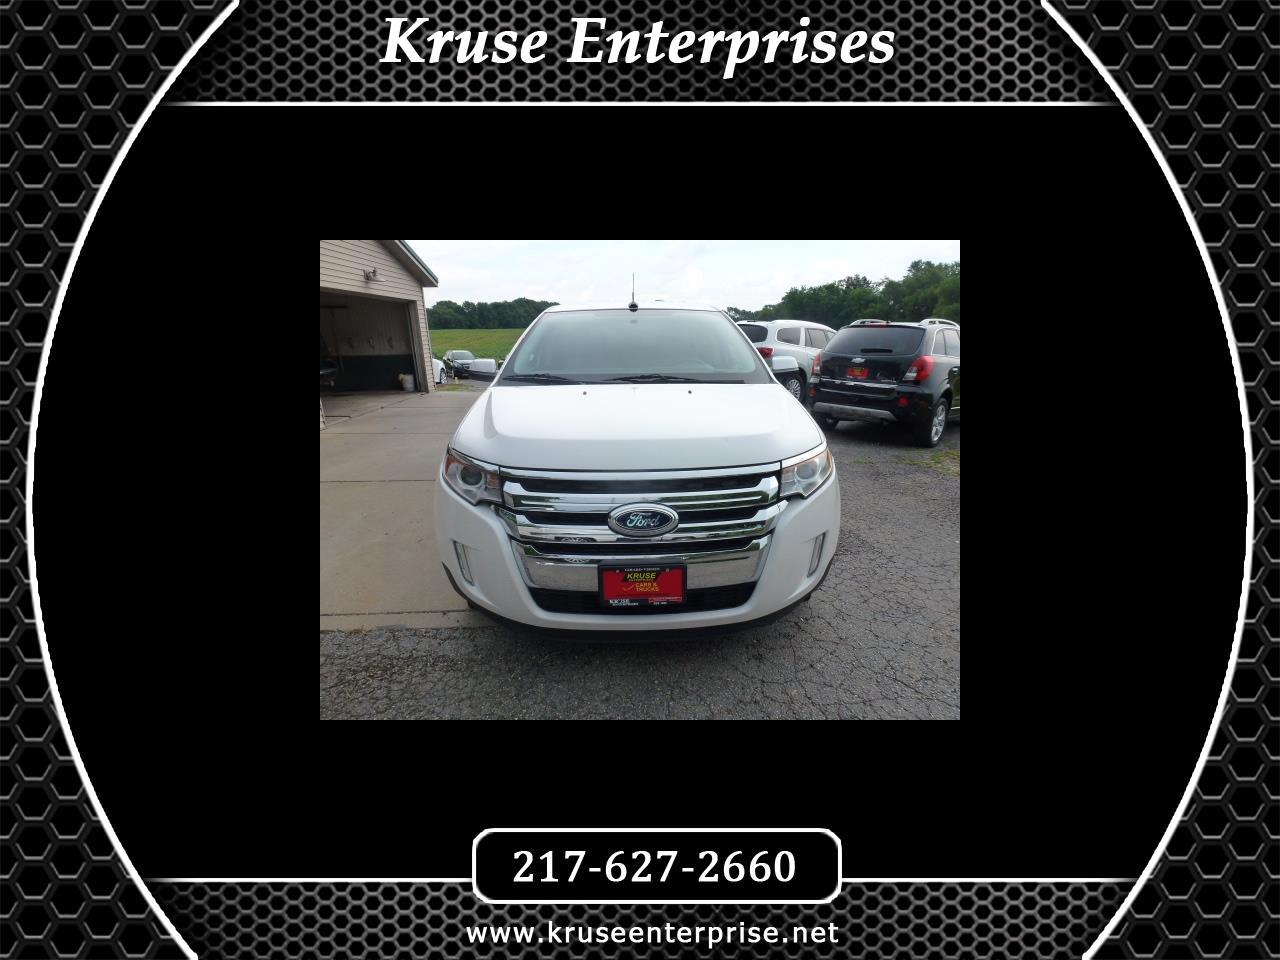 2012 Ford Edge 4dr SEL FWD